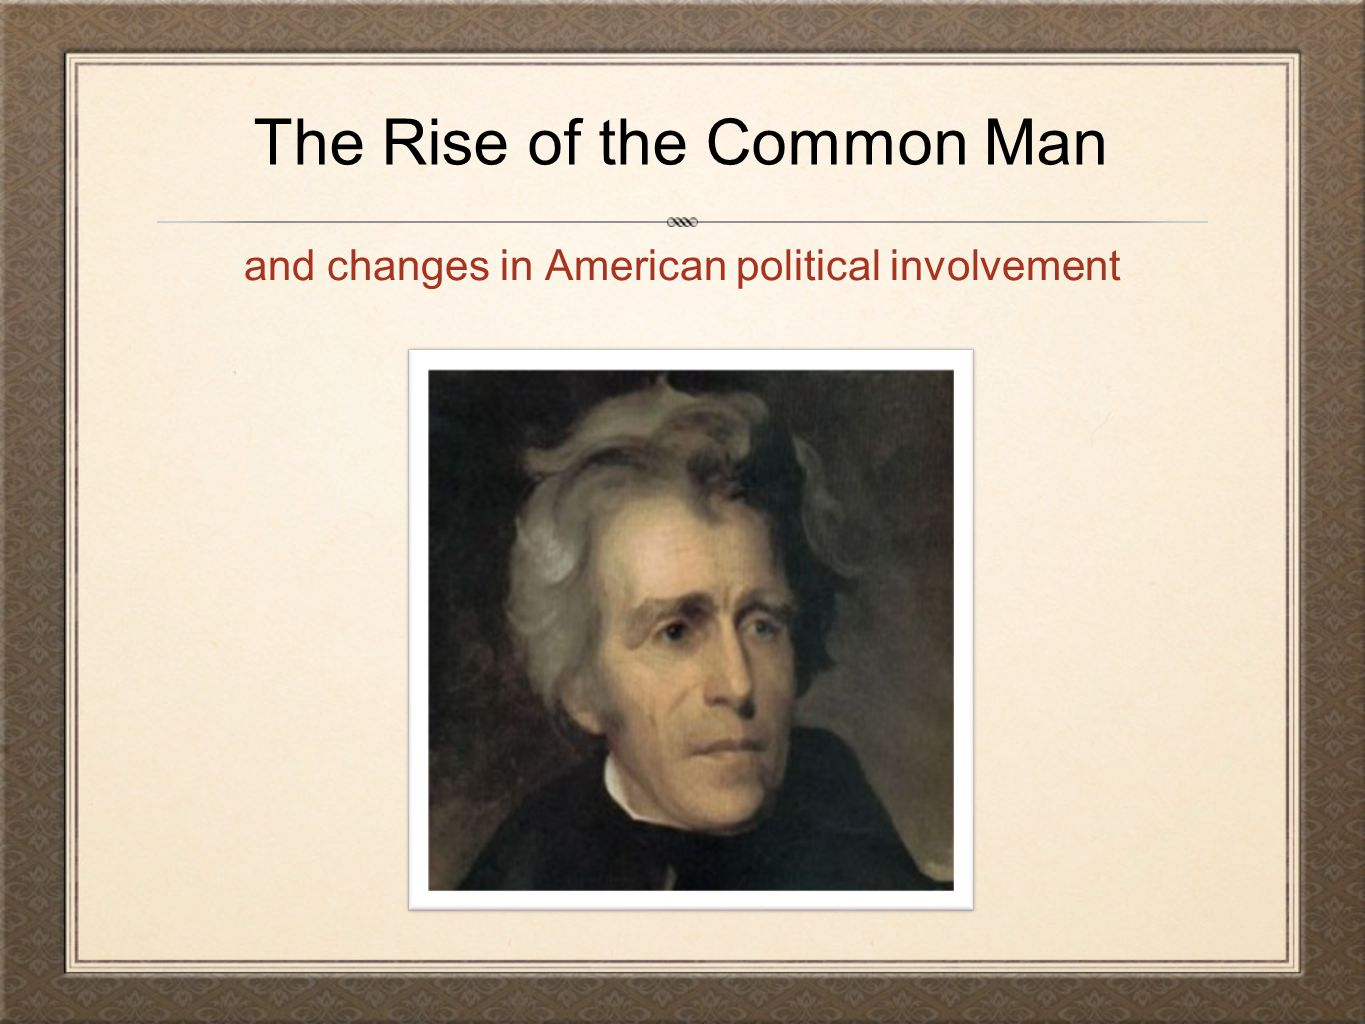 The Rise of the Common Man and changes in American political involvement